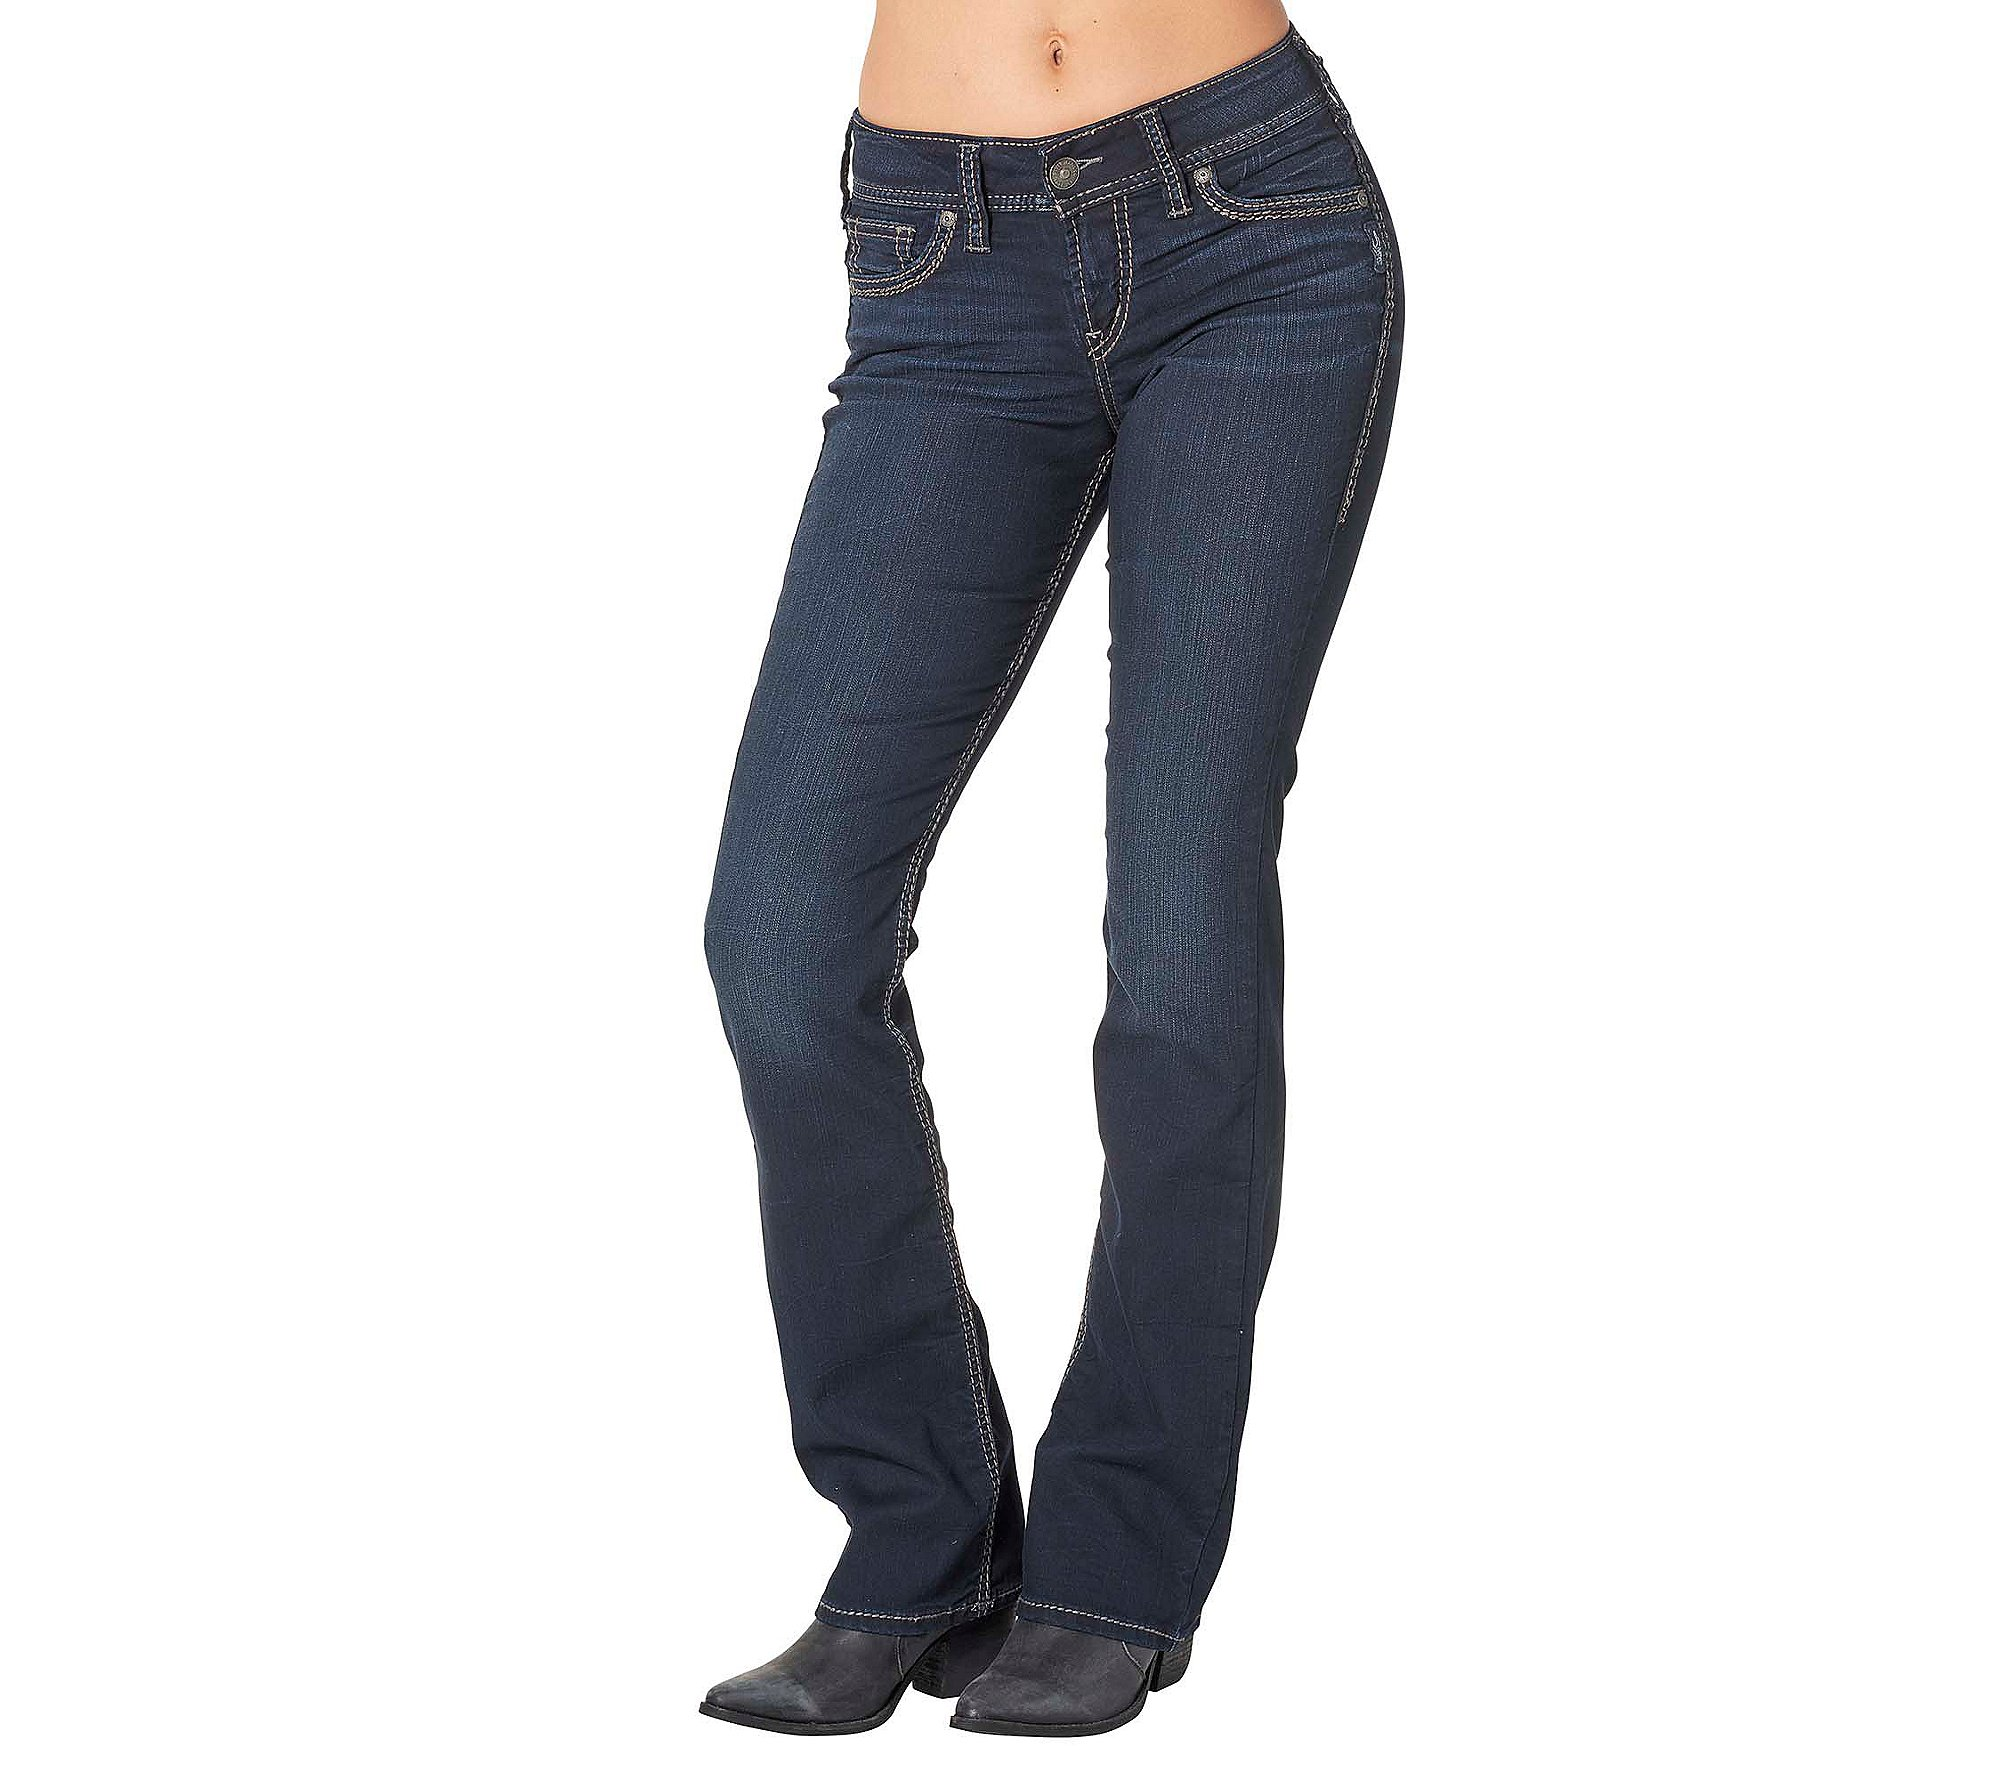 Silver Jeans Co. Suki Mid Slim Boot Jeans 24 by Silver Jeans Co.